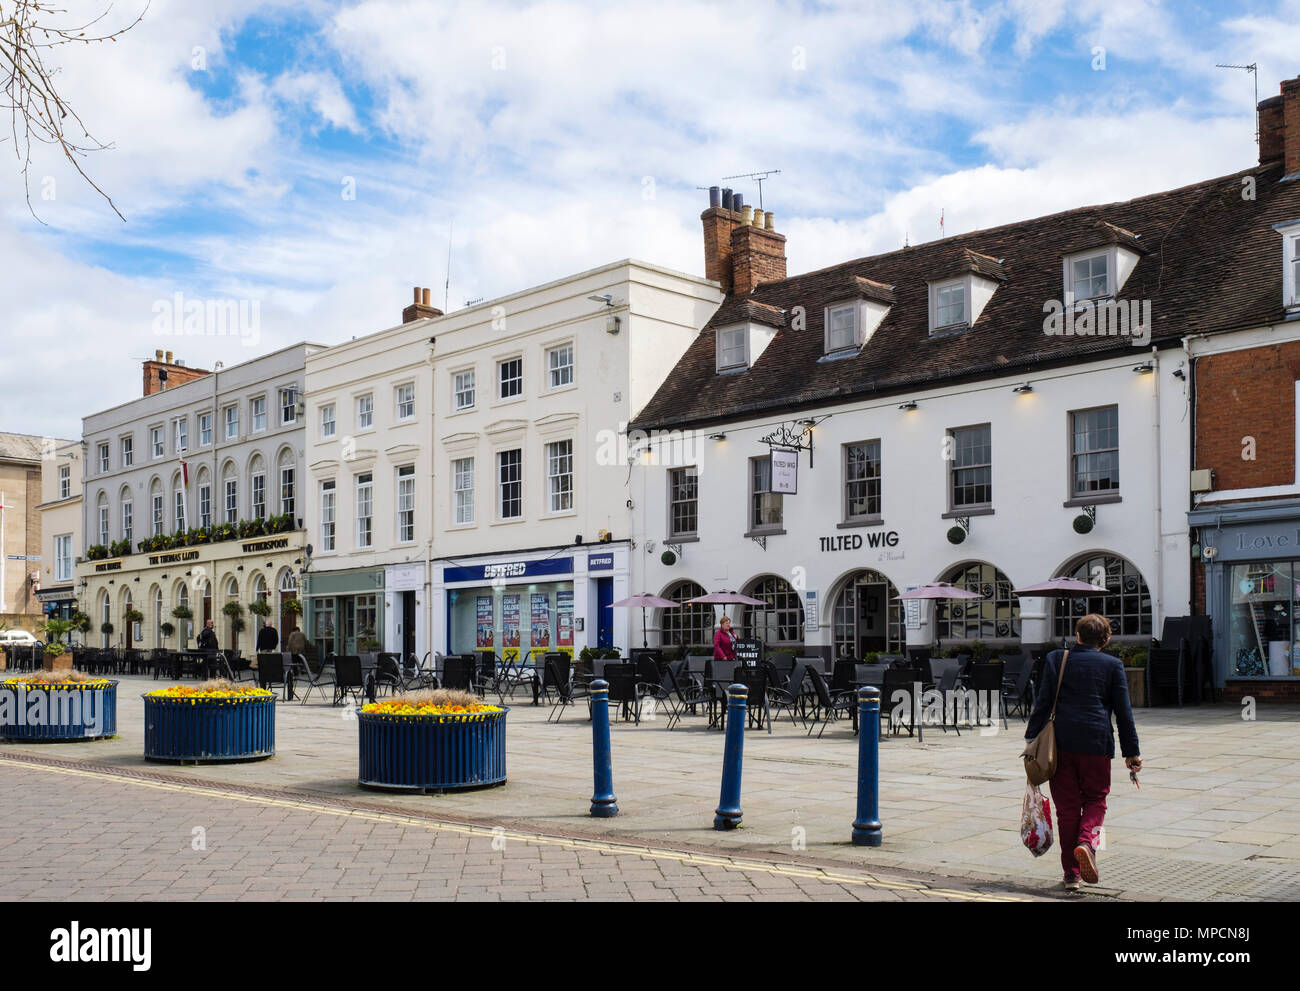 Town centre pubs and Tilted Wig restaurant in Market Place, Warwick, Warwickshire, West Midlands, England, UK, Britain - Stock Image